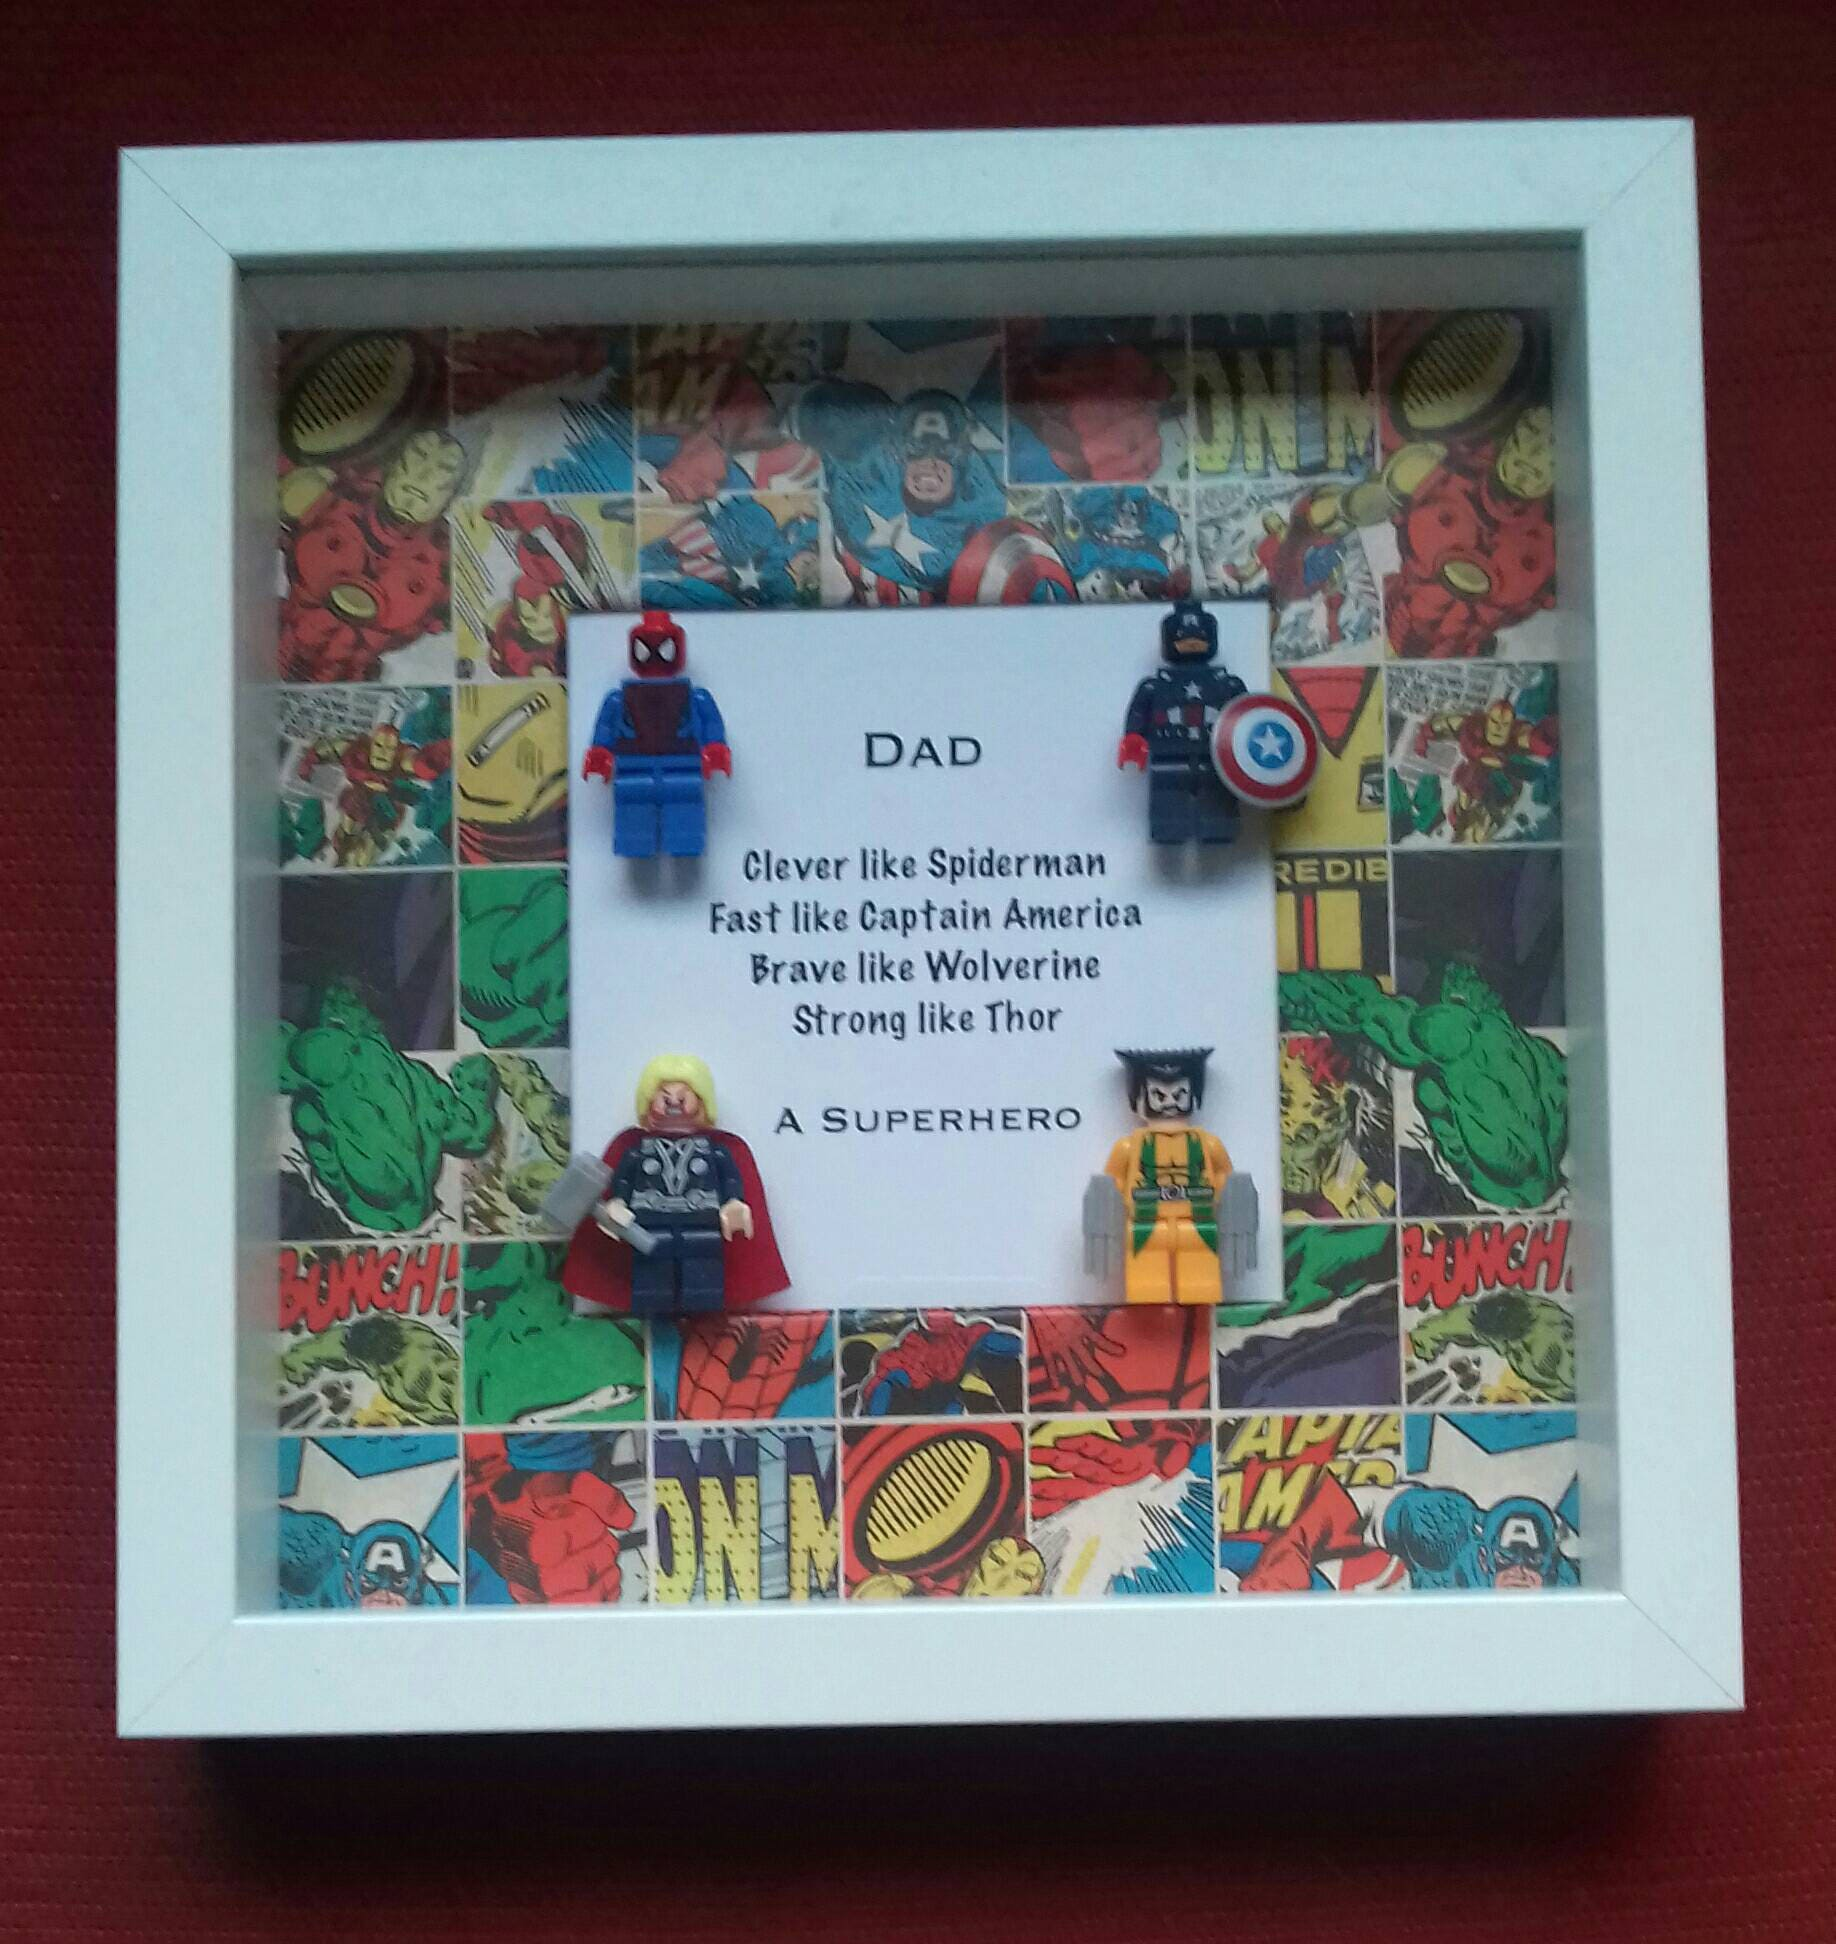 Dads Birthday Present My Dad Superhero Framed Gift For Spiderman Thor Wolverine Captain America Avengers Marvel 4 Minifigures From FramedMiniFigures